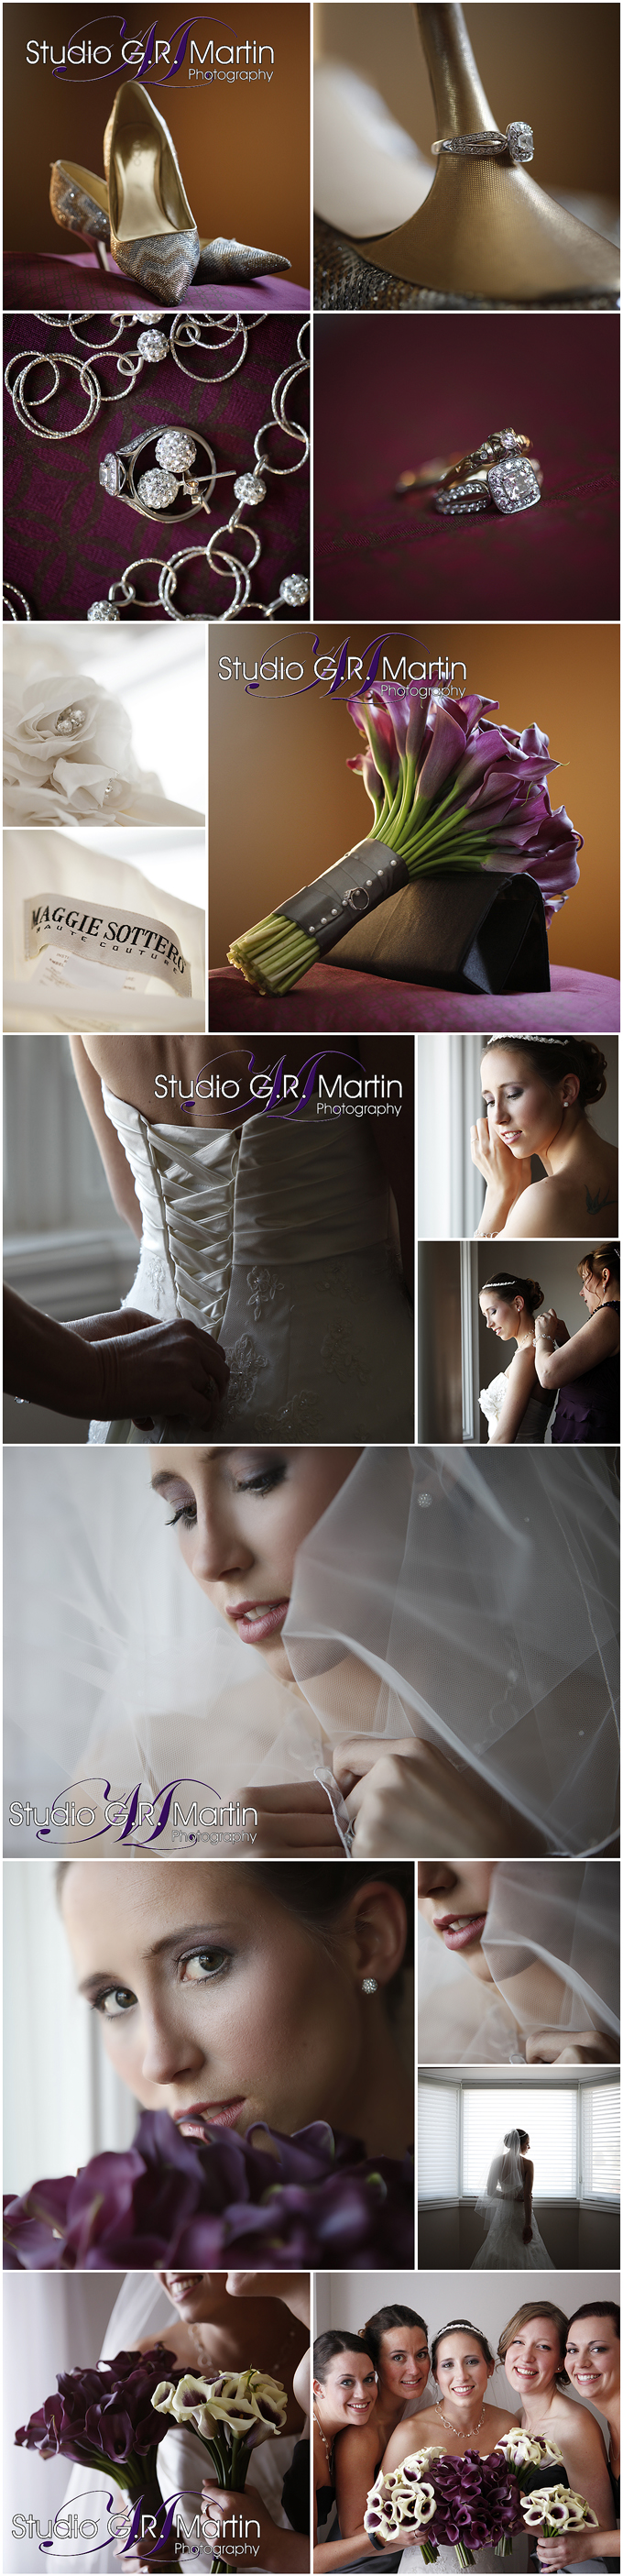 winter wedding photographers in Ottawa Ontario Canada -  weddings